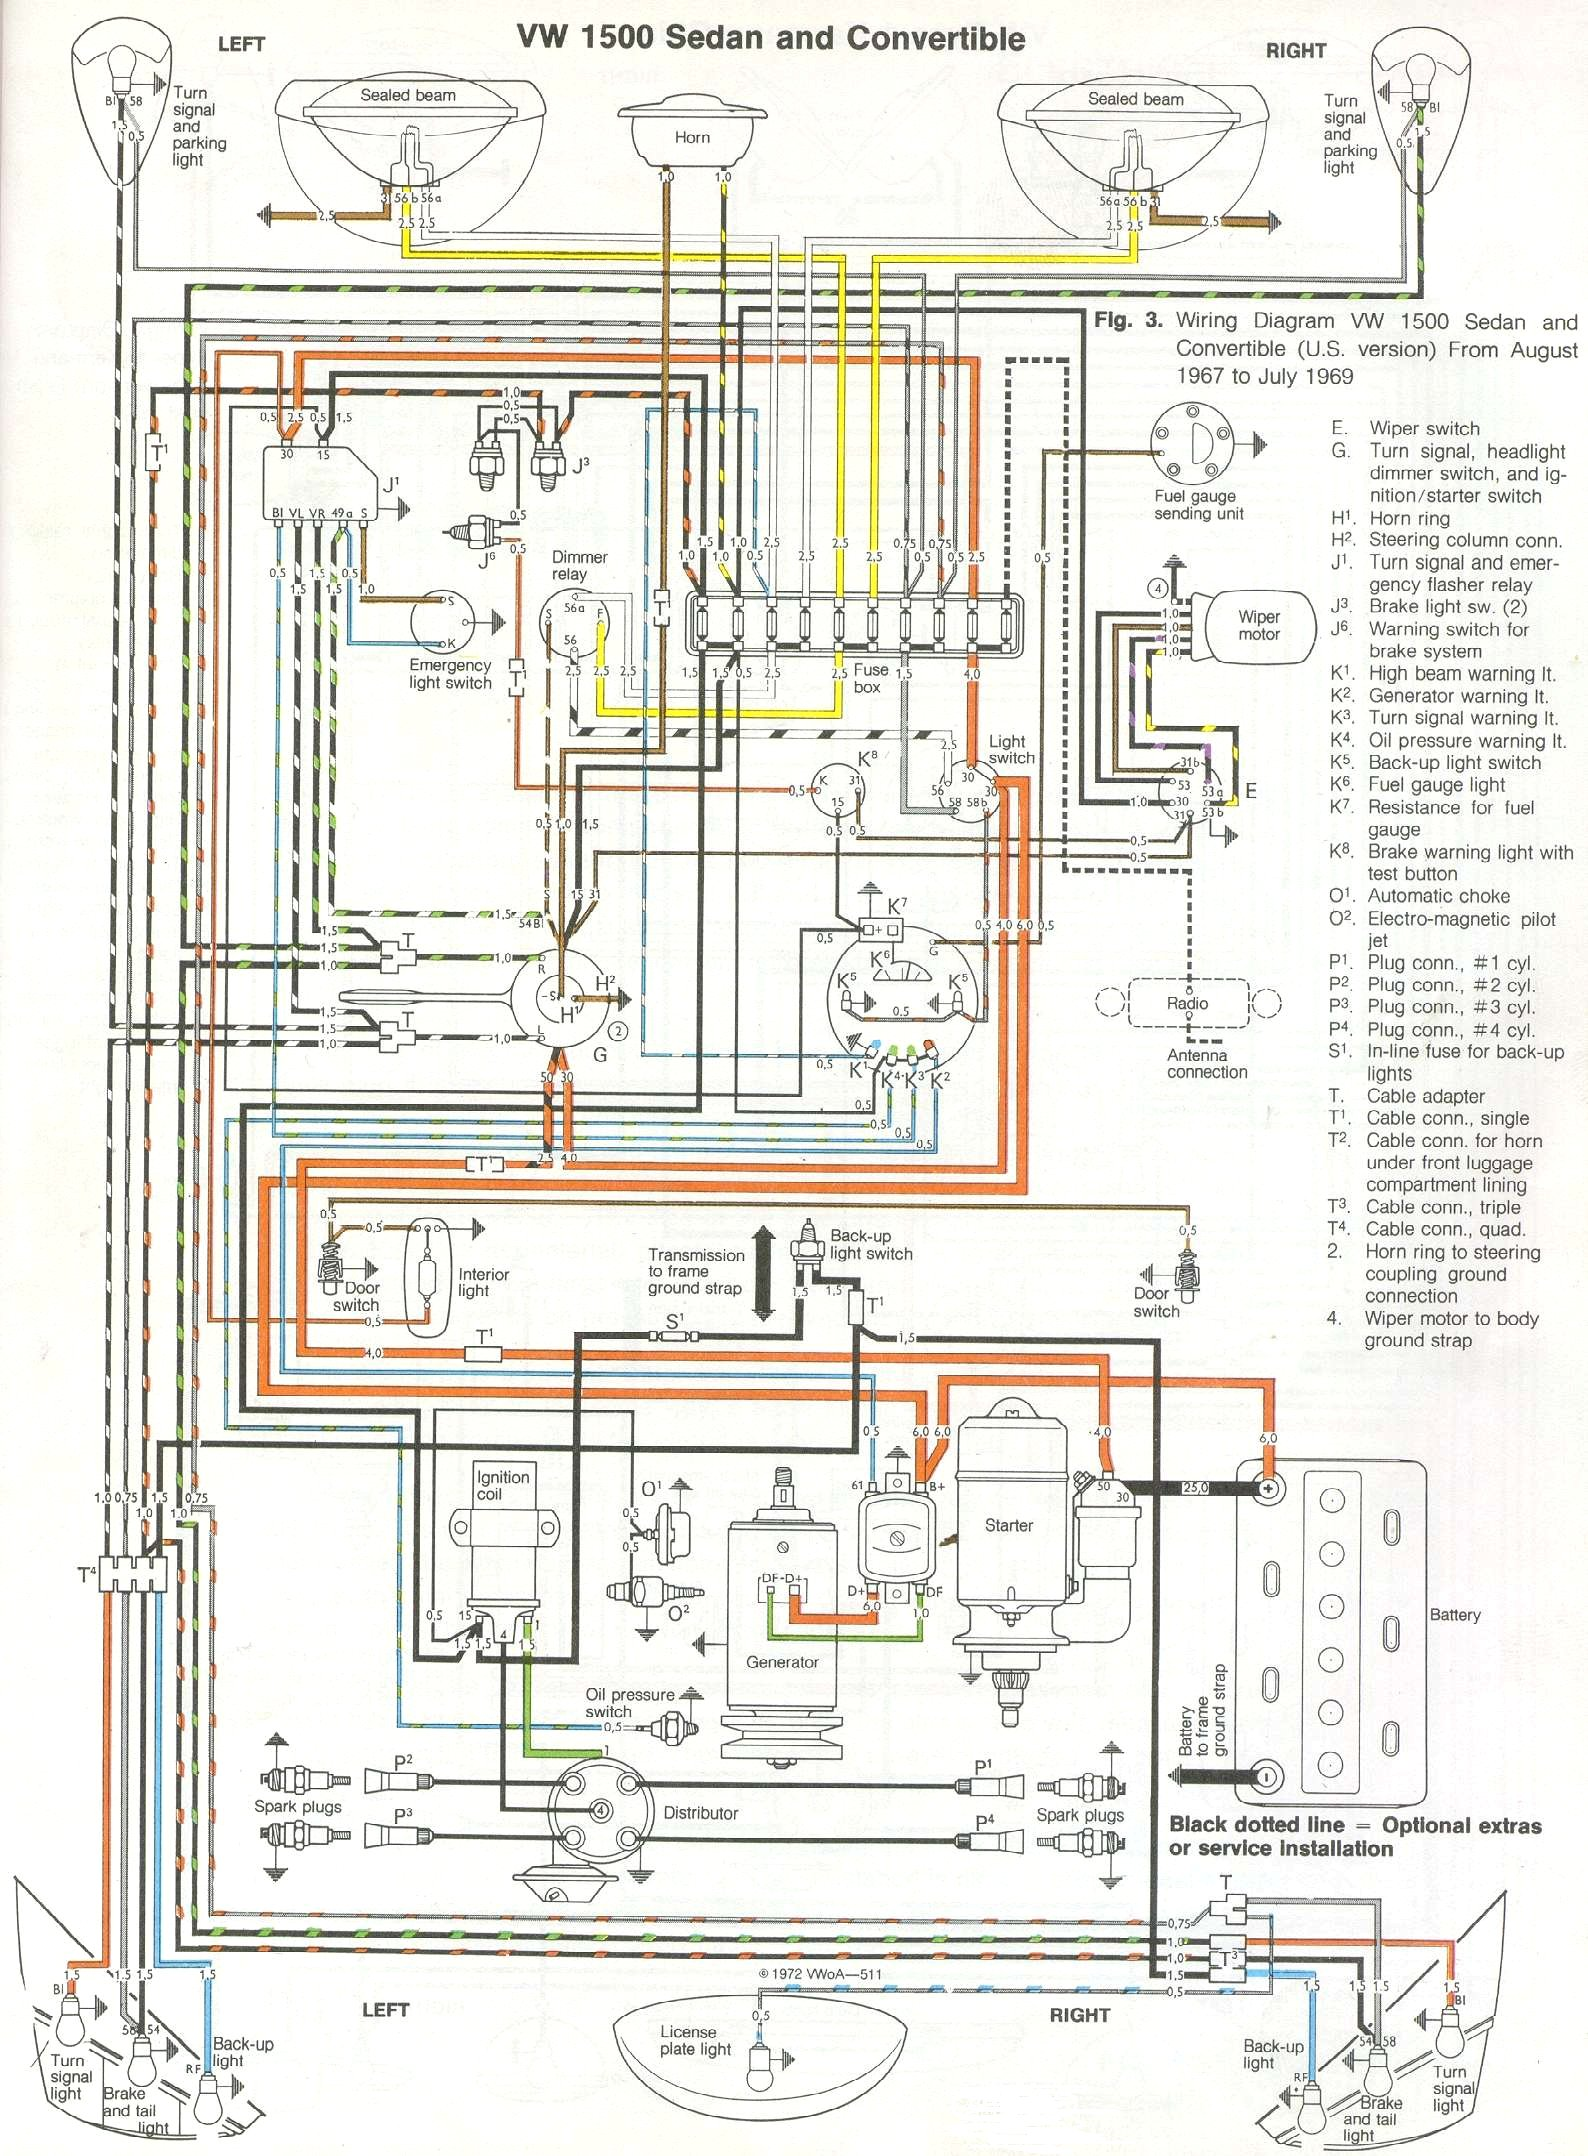 bug_6869 1969 71 beetle wiring diagram thegoldenbug com vw bug wiring diagram at creativeand.co